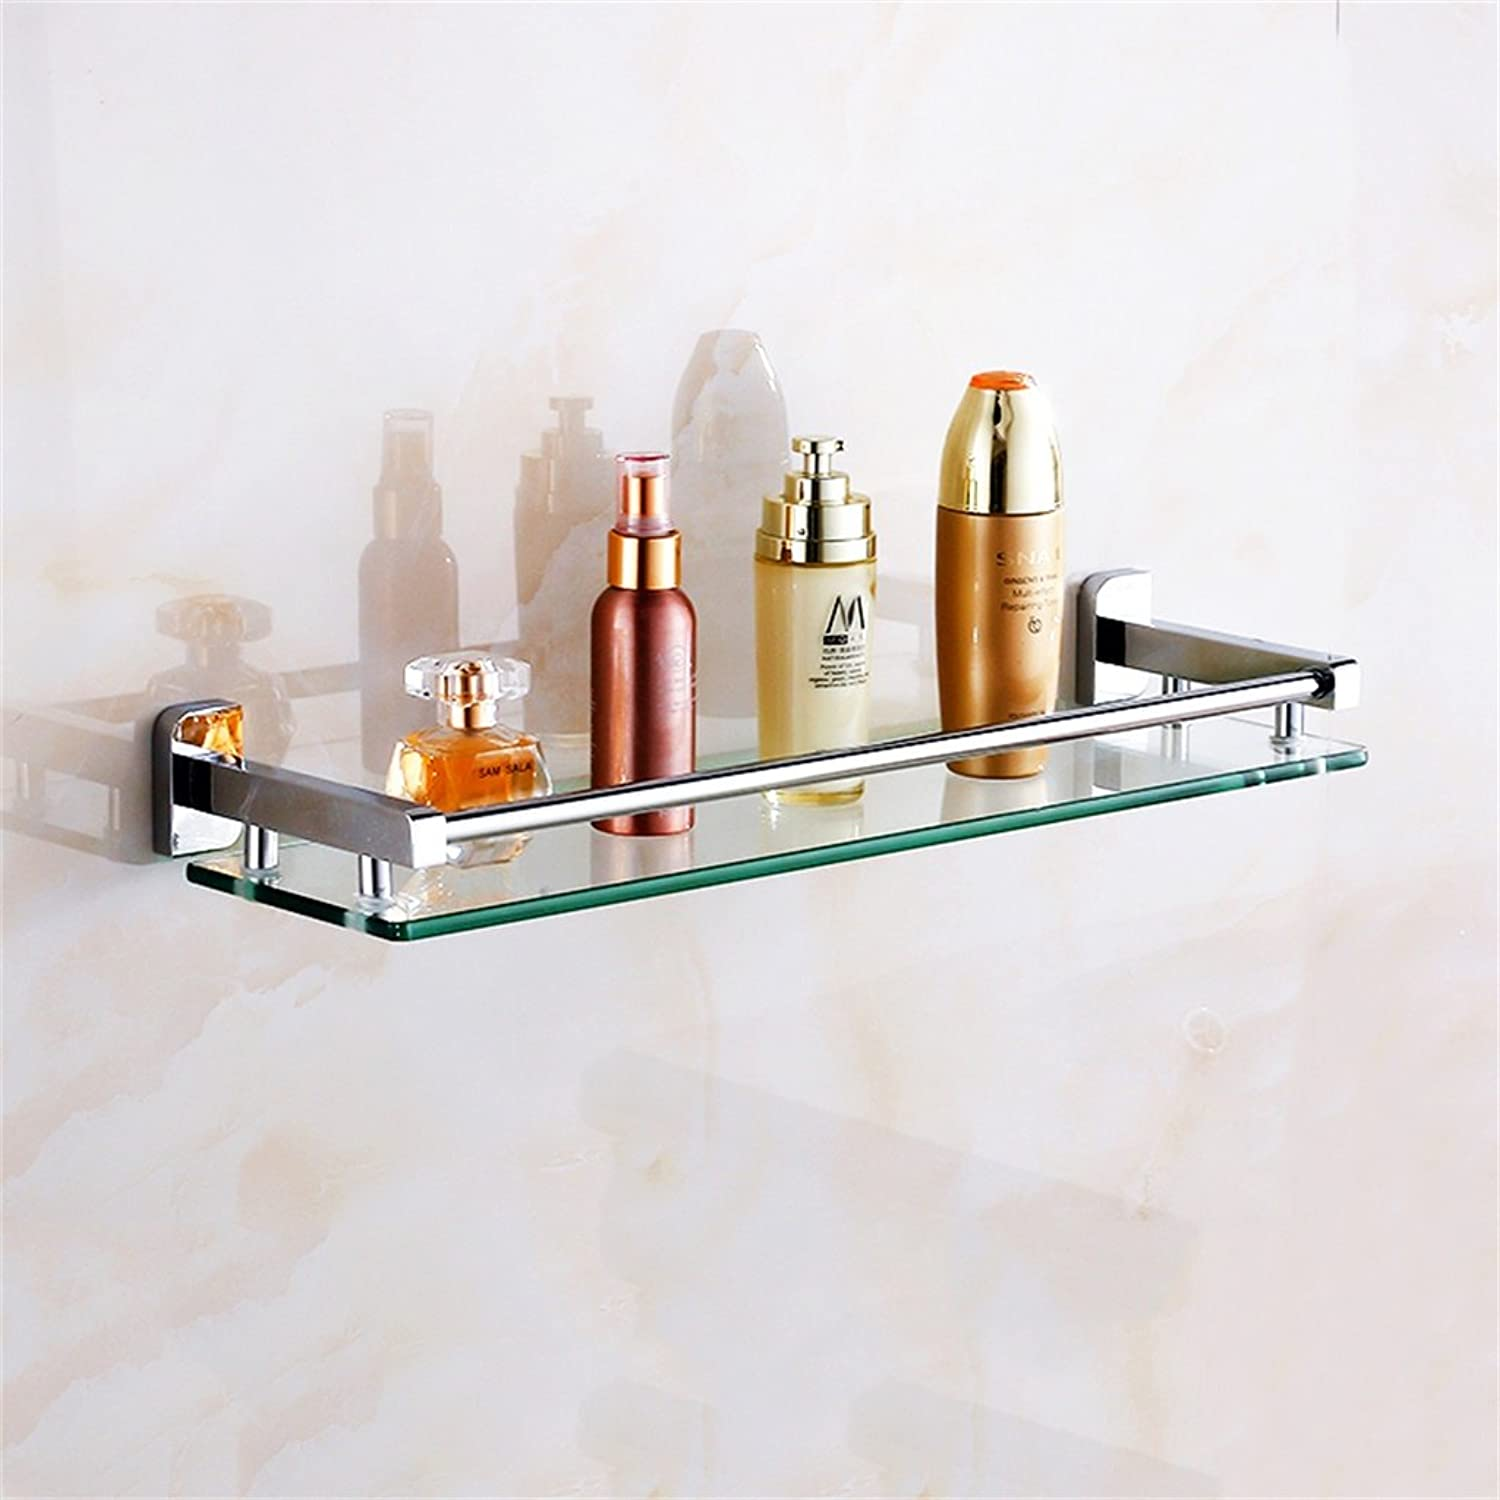 Cpp Shelf Bathroom Shelf Bathroom Shelf Glass Bathroom Wall mountings Safety Rounded Corners (Size   41  12cm)